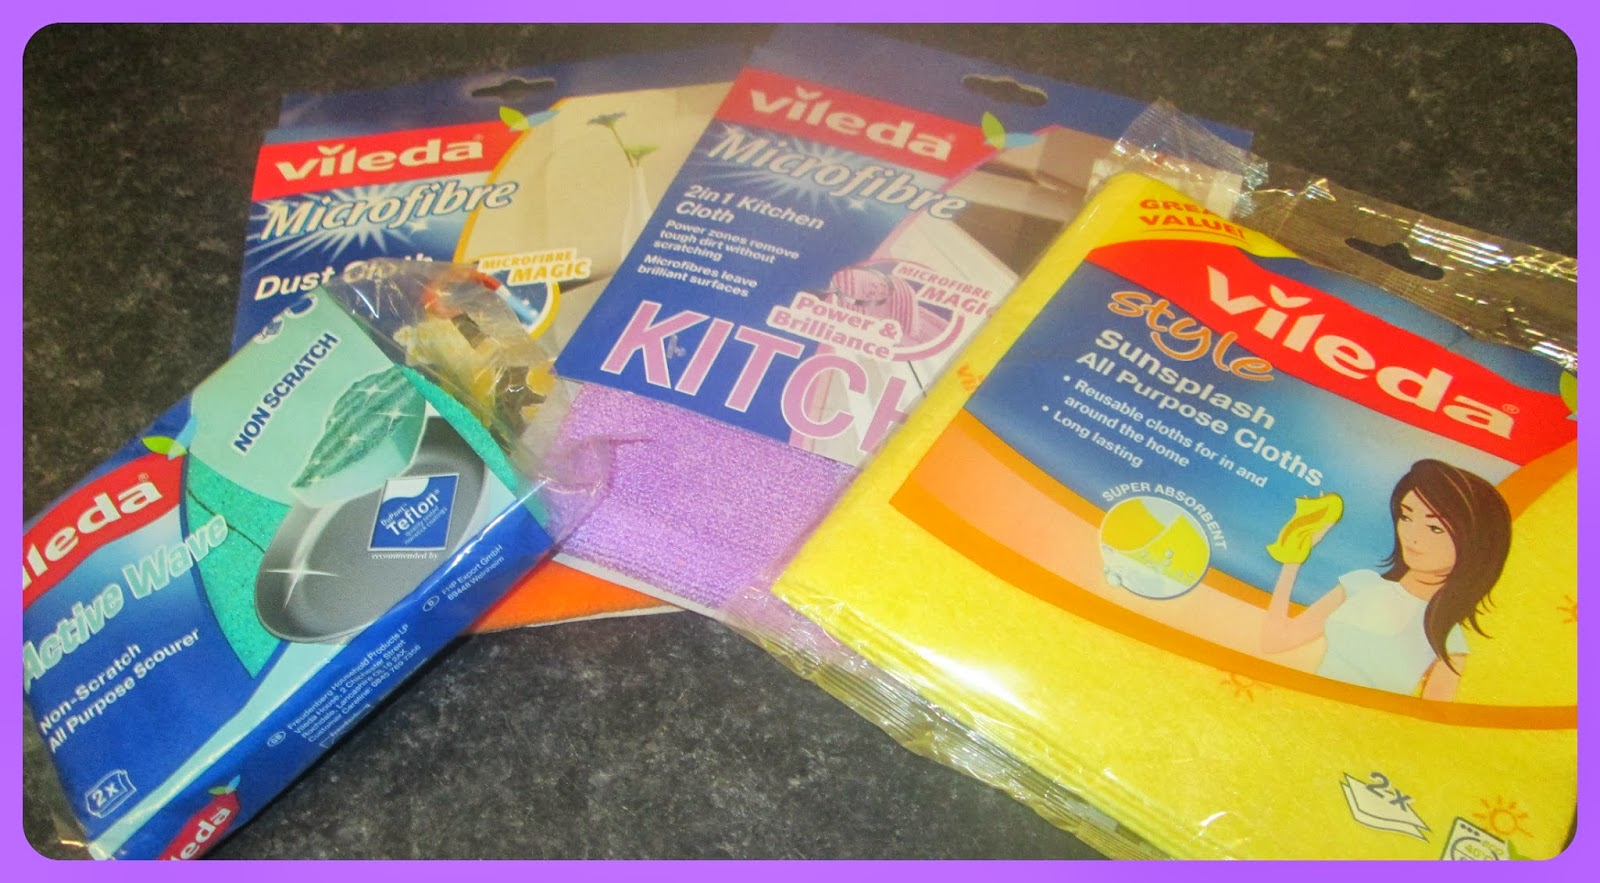 Vileda cleaning products for the home